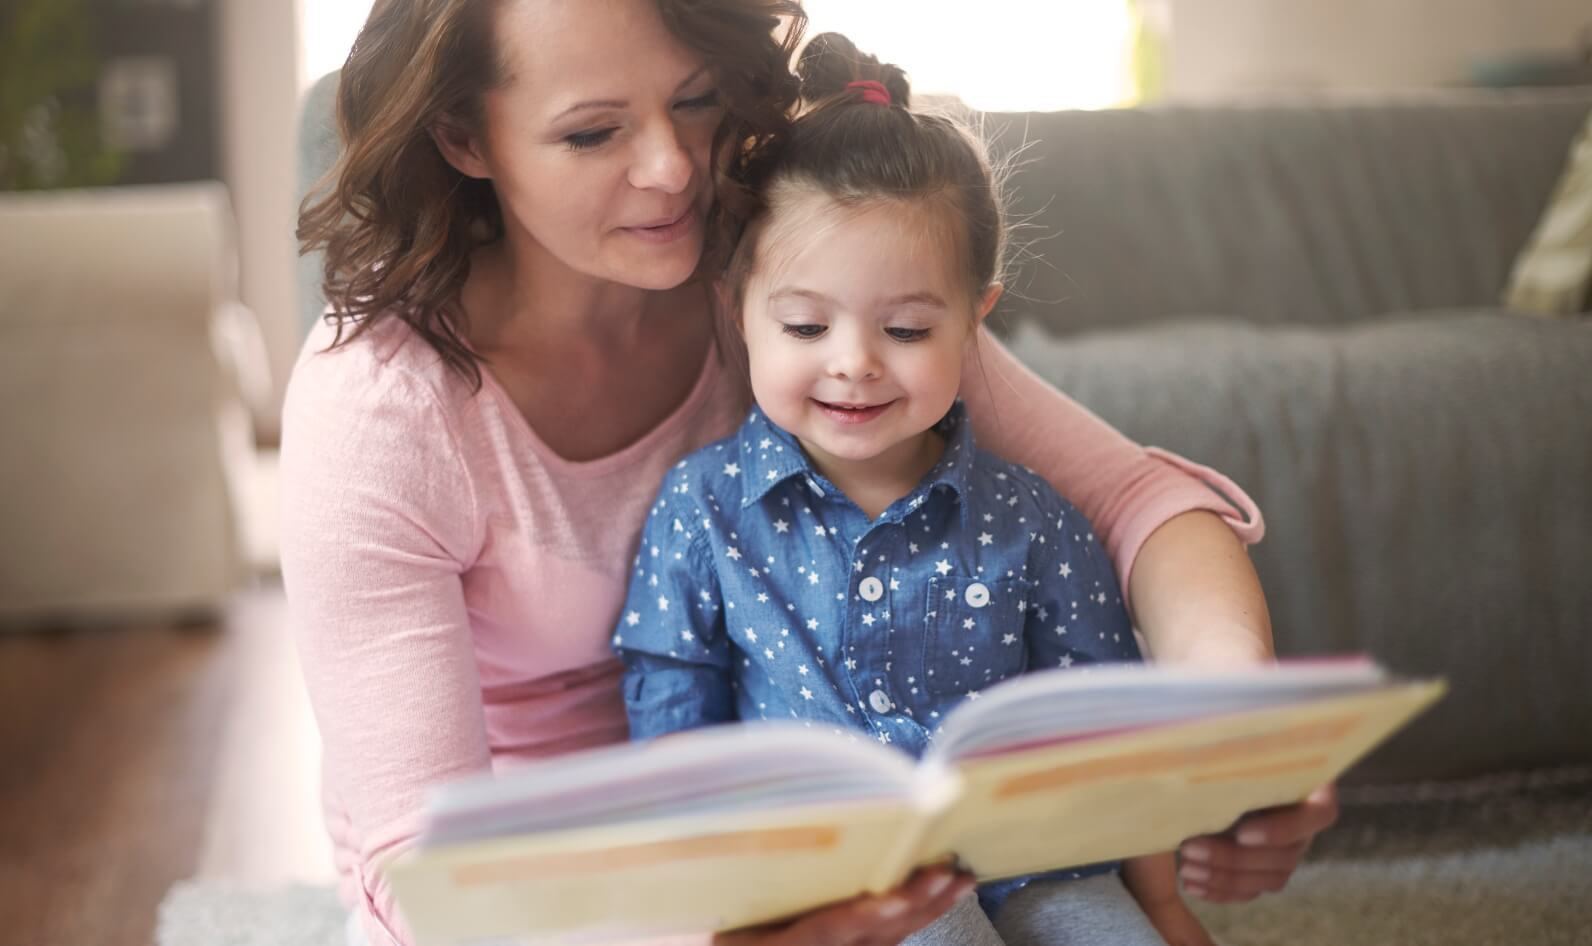 making-the-most-of-reading-aloud-practical-strategies-for-parents-of-young-children-hero.jpg?mtime=20181008031537